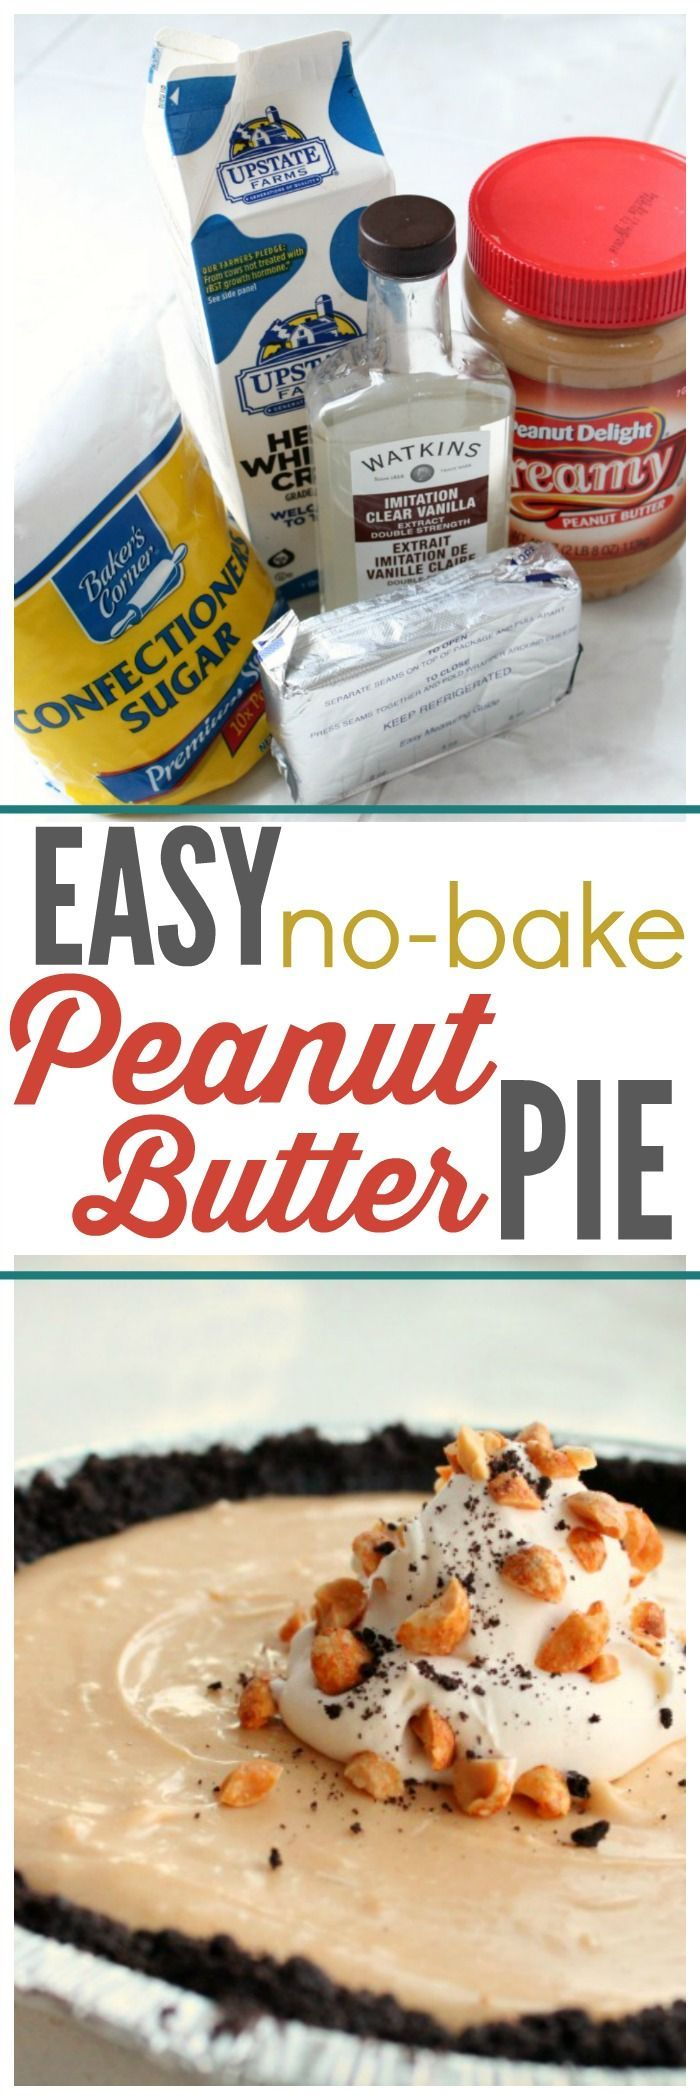 Easy Easy No-bake Peanut Butter Pie Recipe that will BLOW YOUR MIND! ~ http://reallifedinner.com